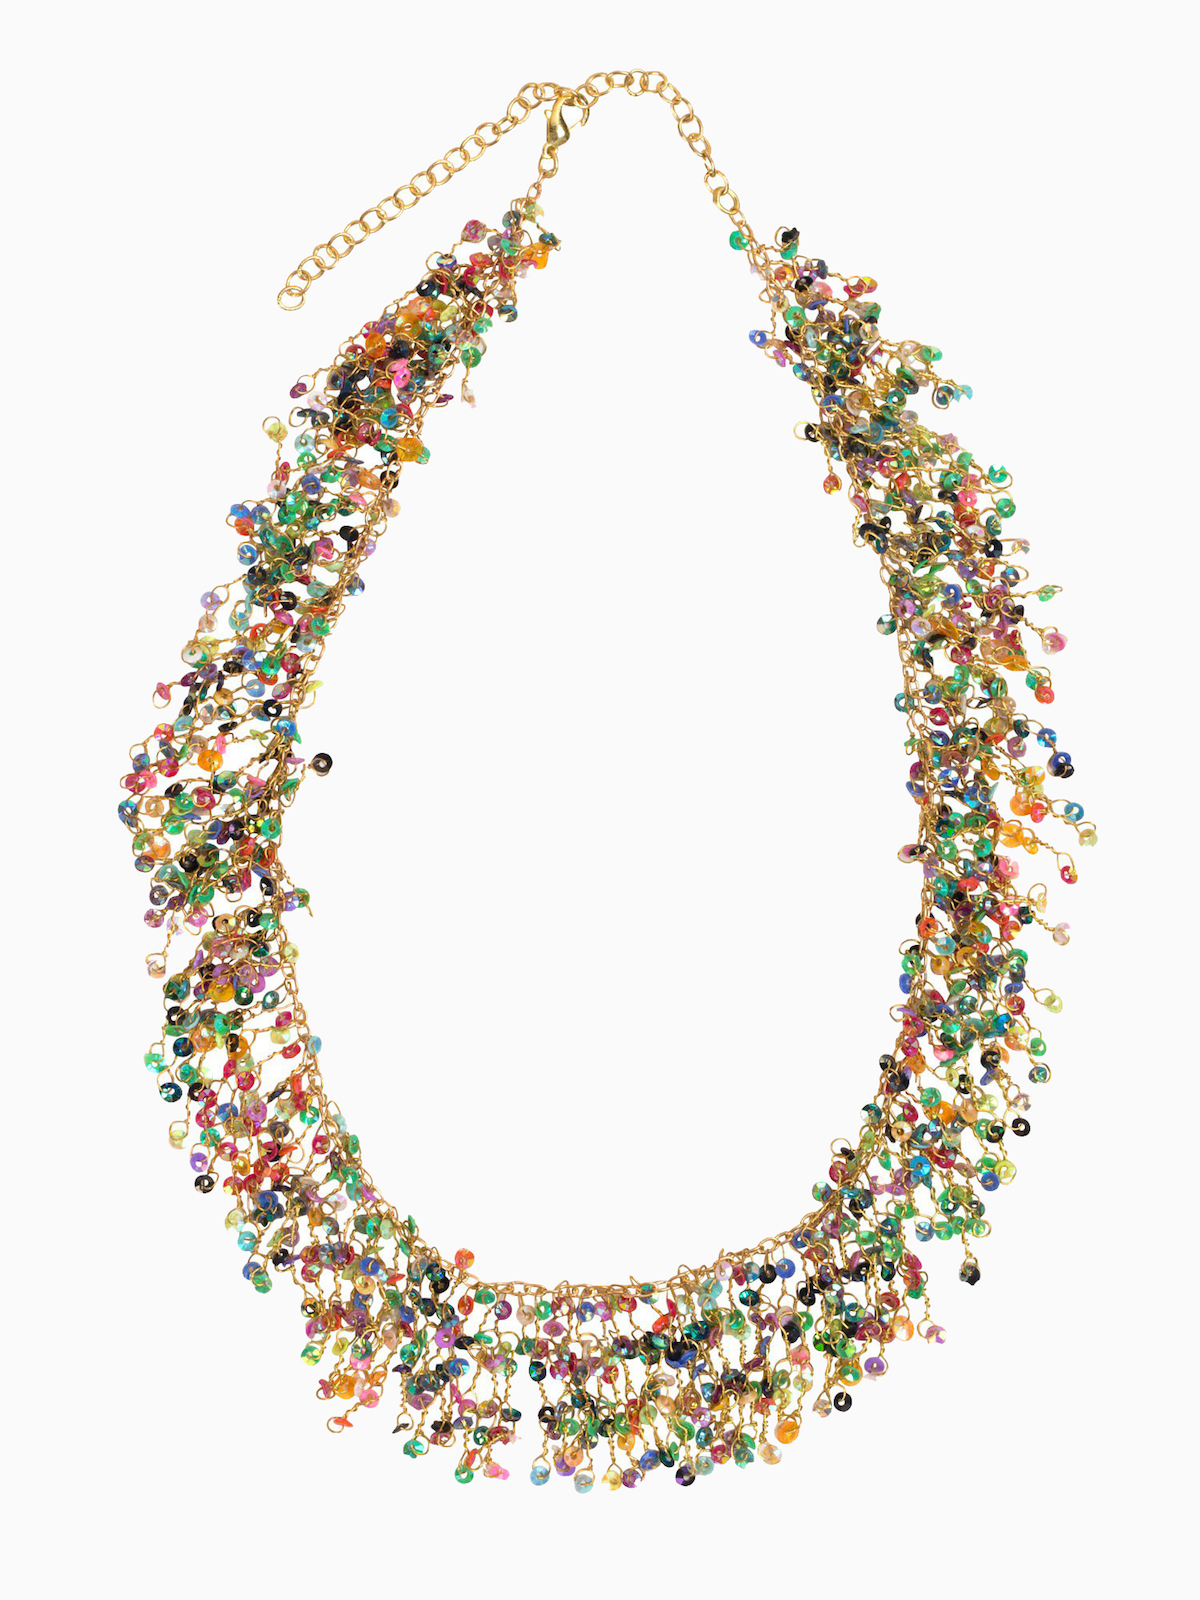 All The Colors Necklace from Ten Thousand Villages - Sparkling Sustainable Fashion Statement Pieces on The Good Trade